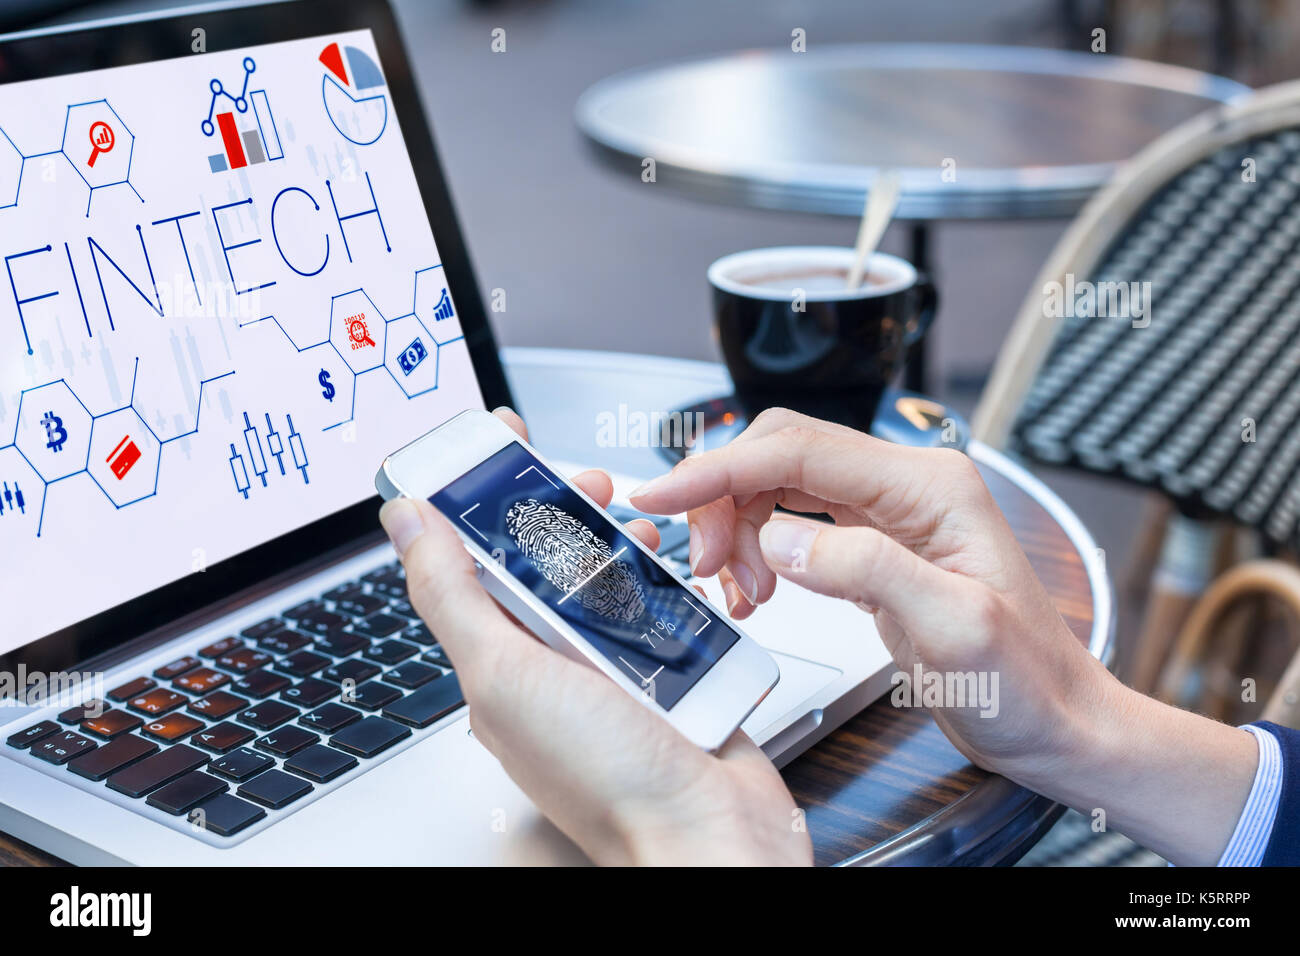 Business person using fingerprint scan on smartphone to access secure data payment on internet with laptop computer in background with fintech (financ - Stock Image